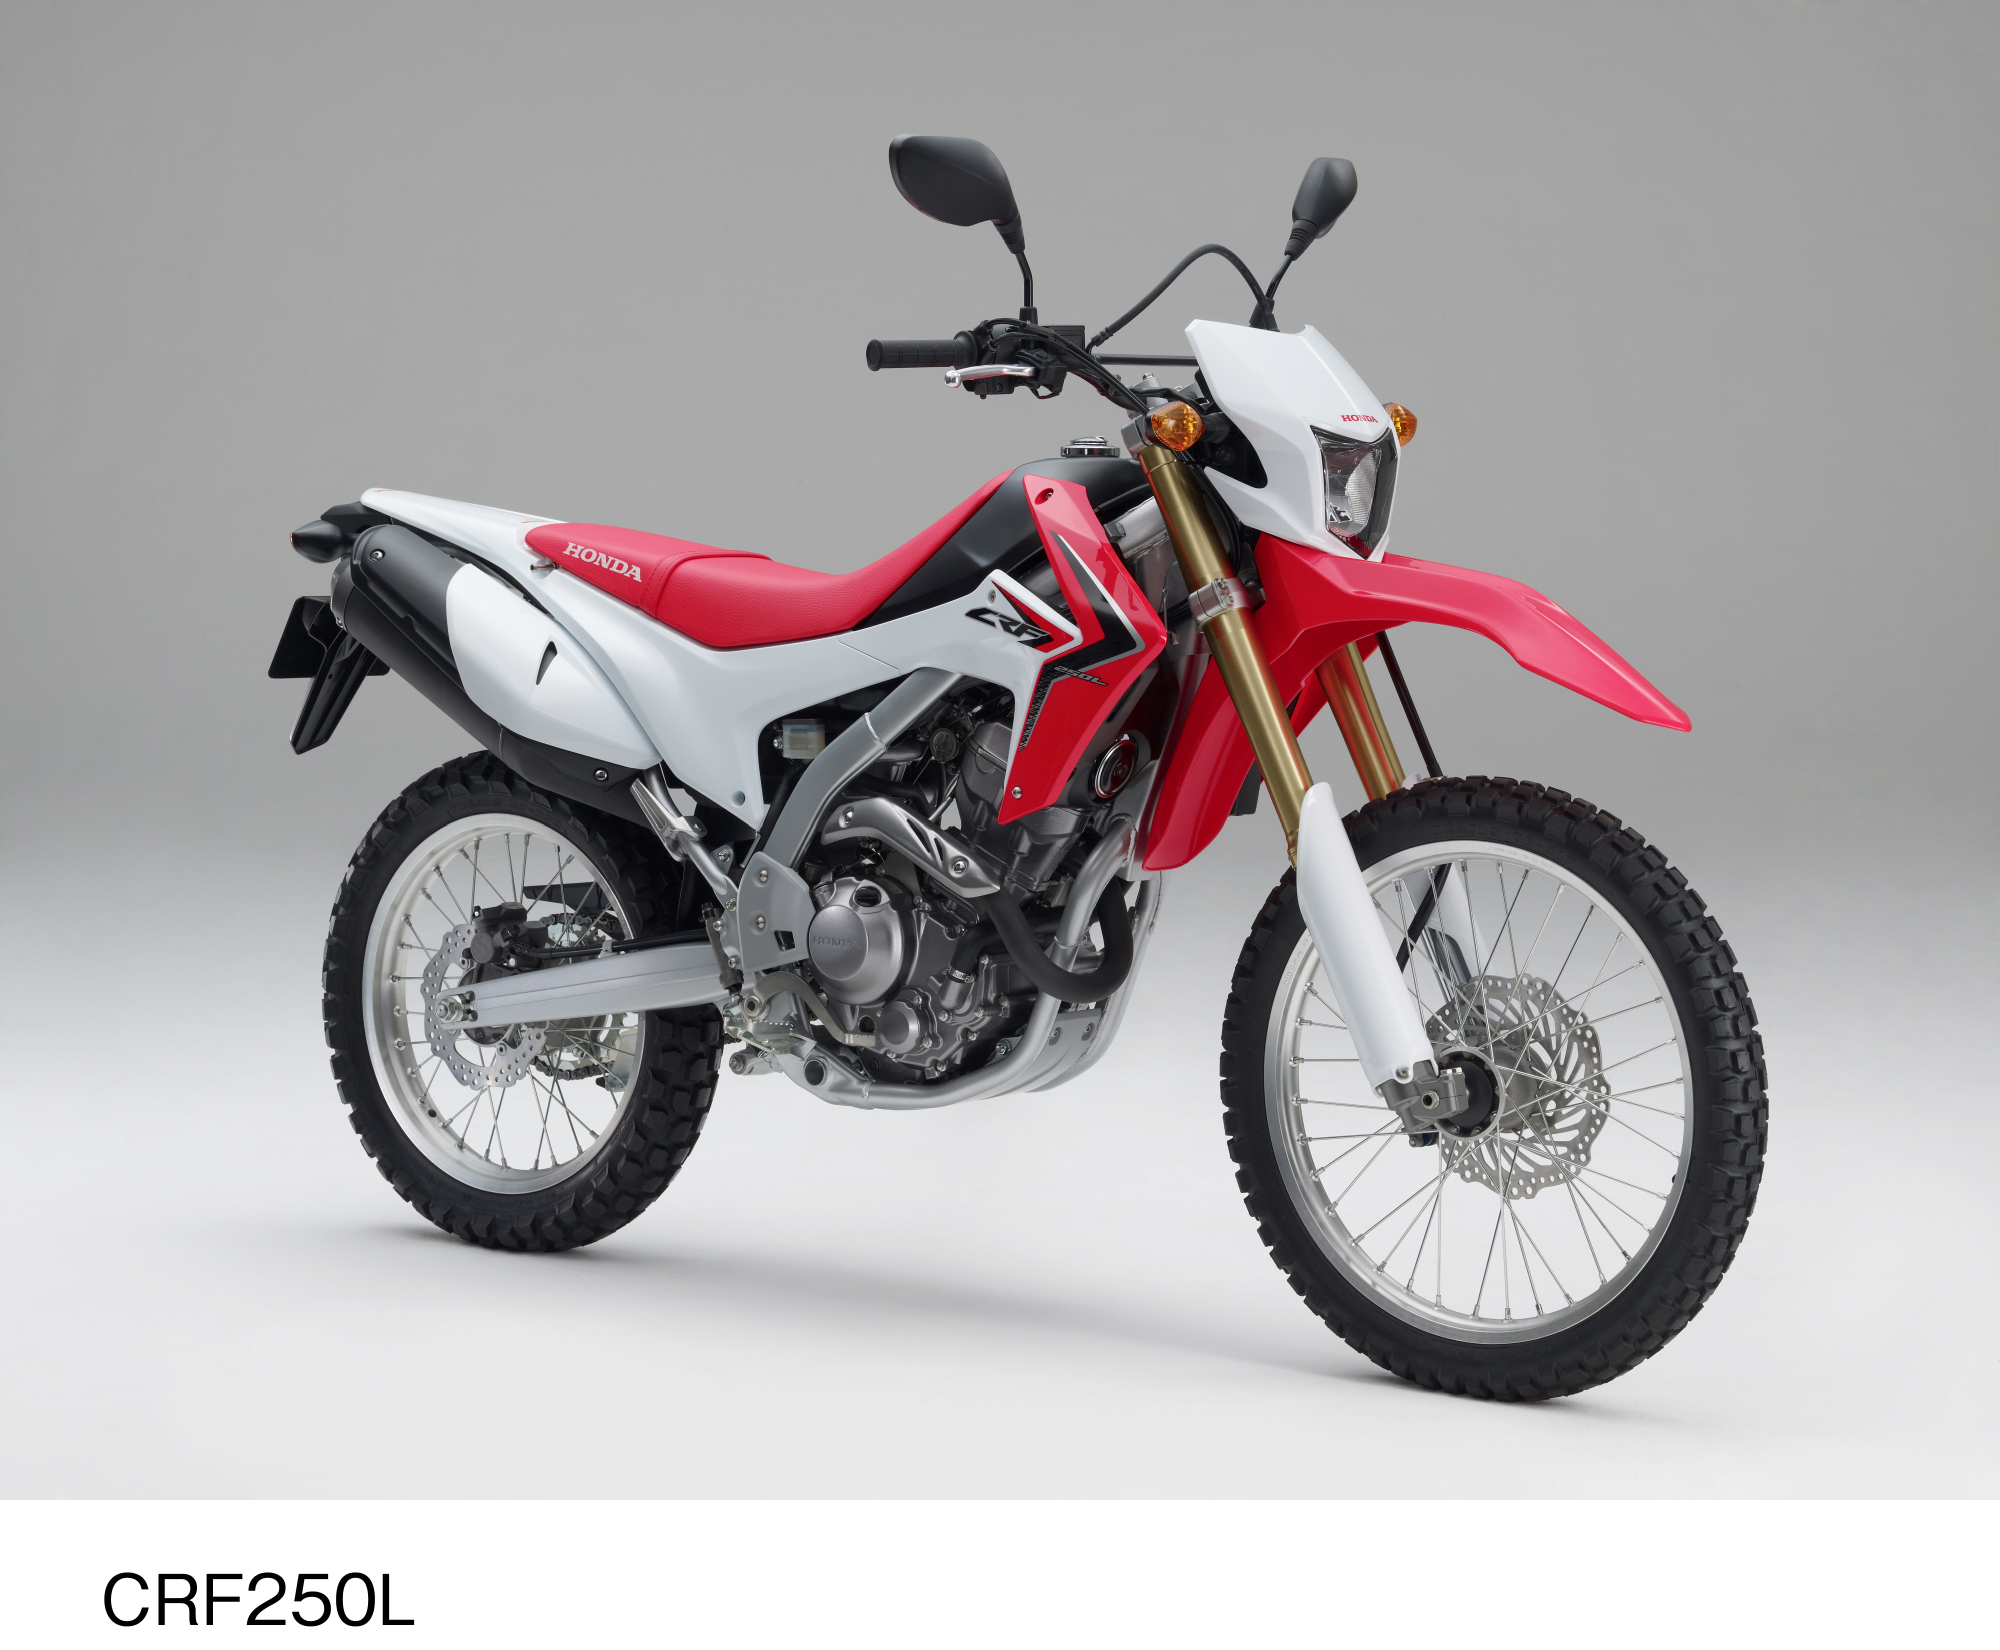 honda crf 250 l bilder und technische daten. Black Bedroom Furniture Sets. Home Design Ideas